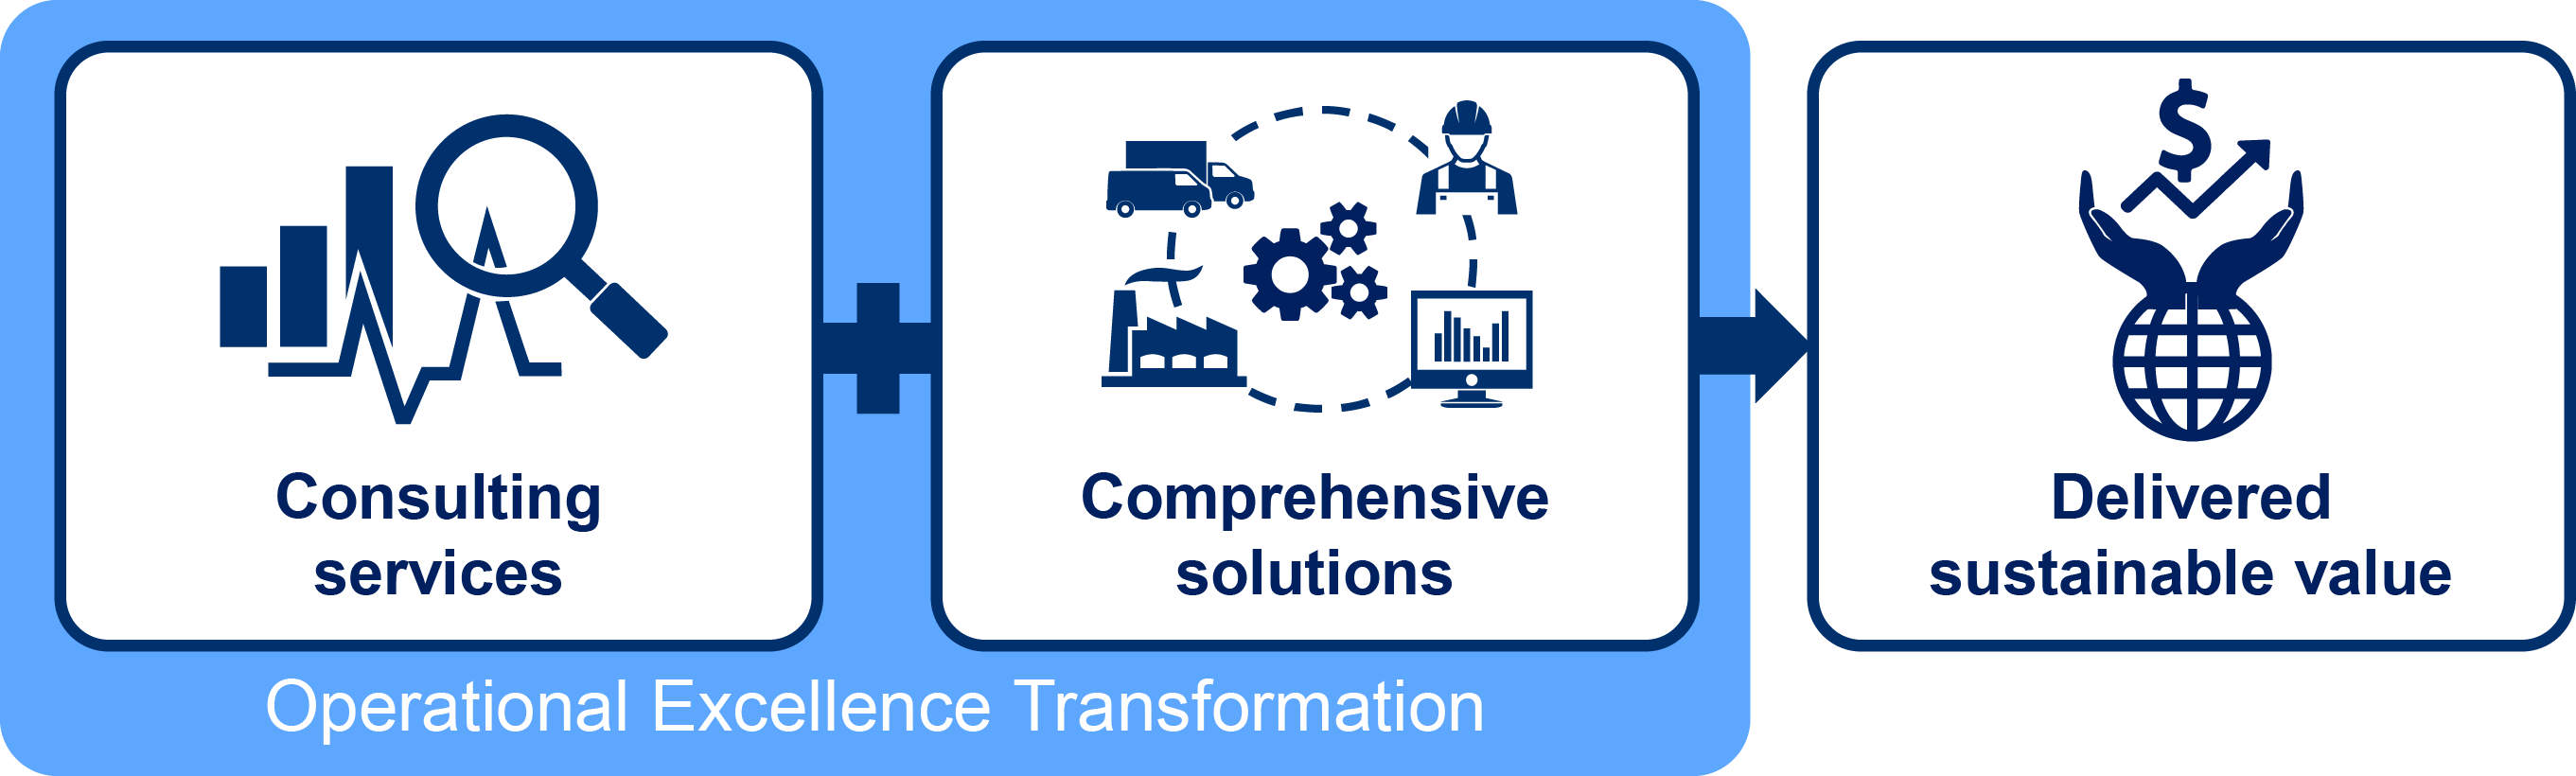 Operational Excellence Transformation thumbnail